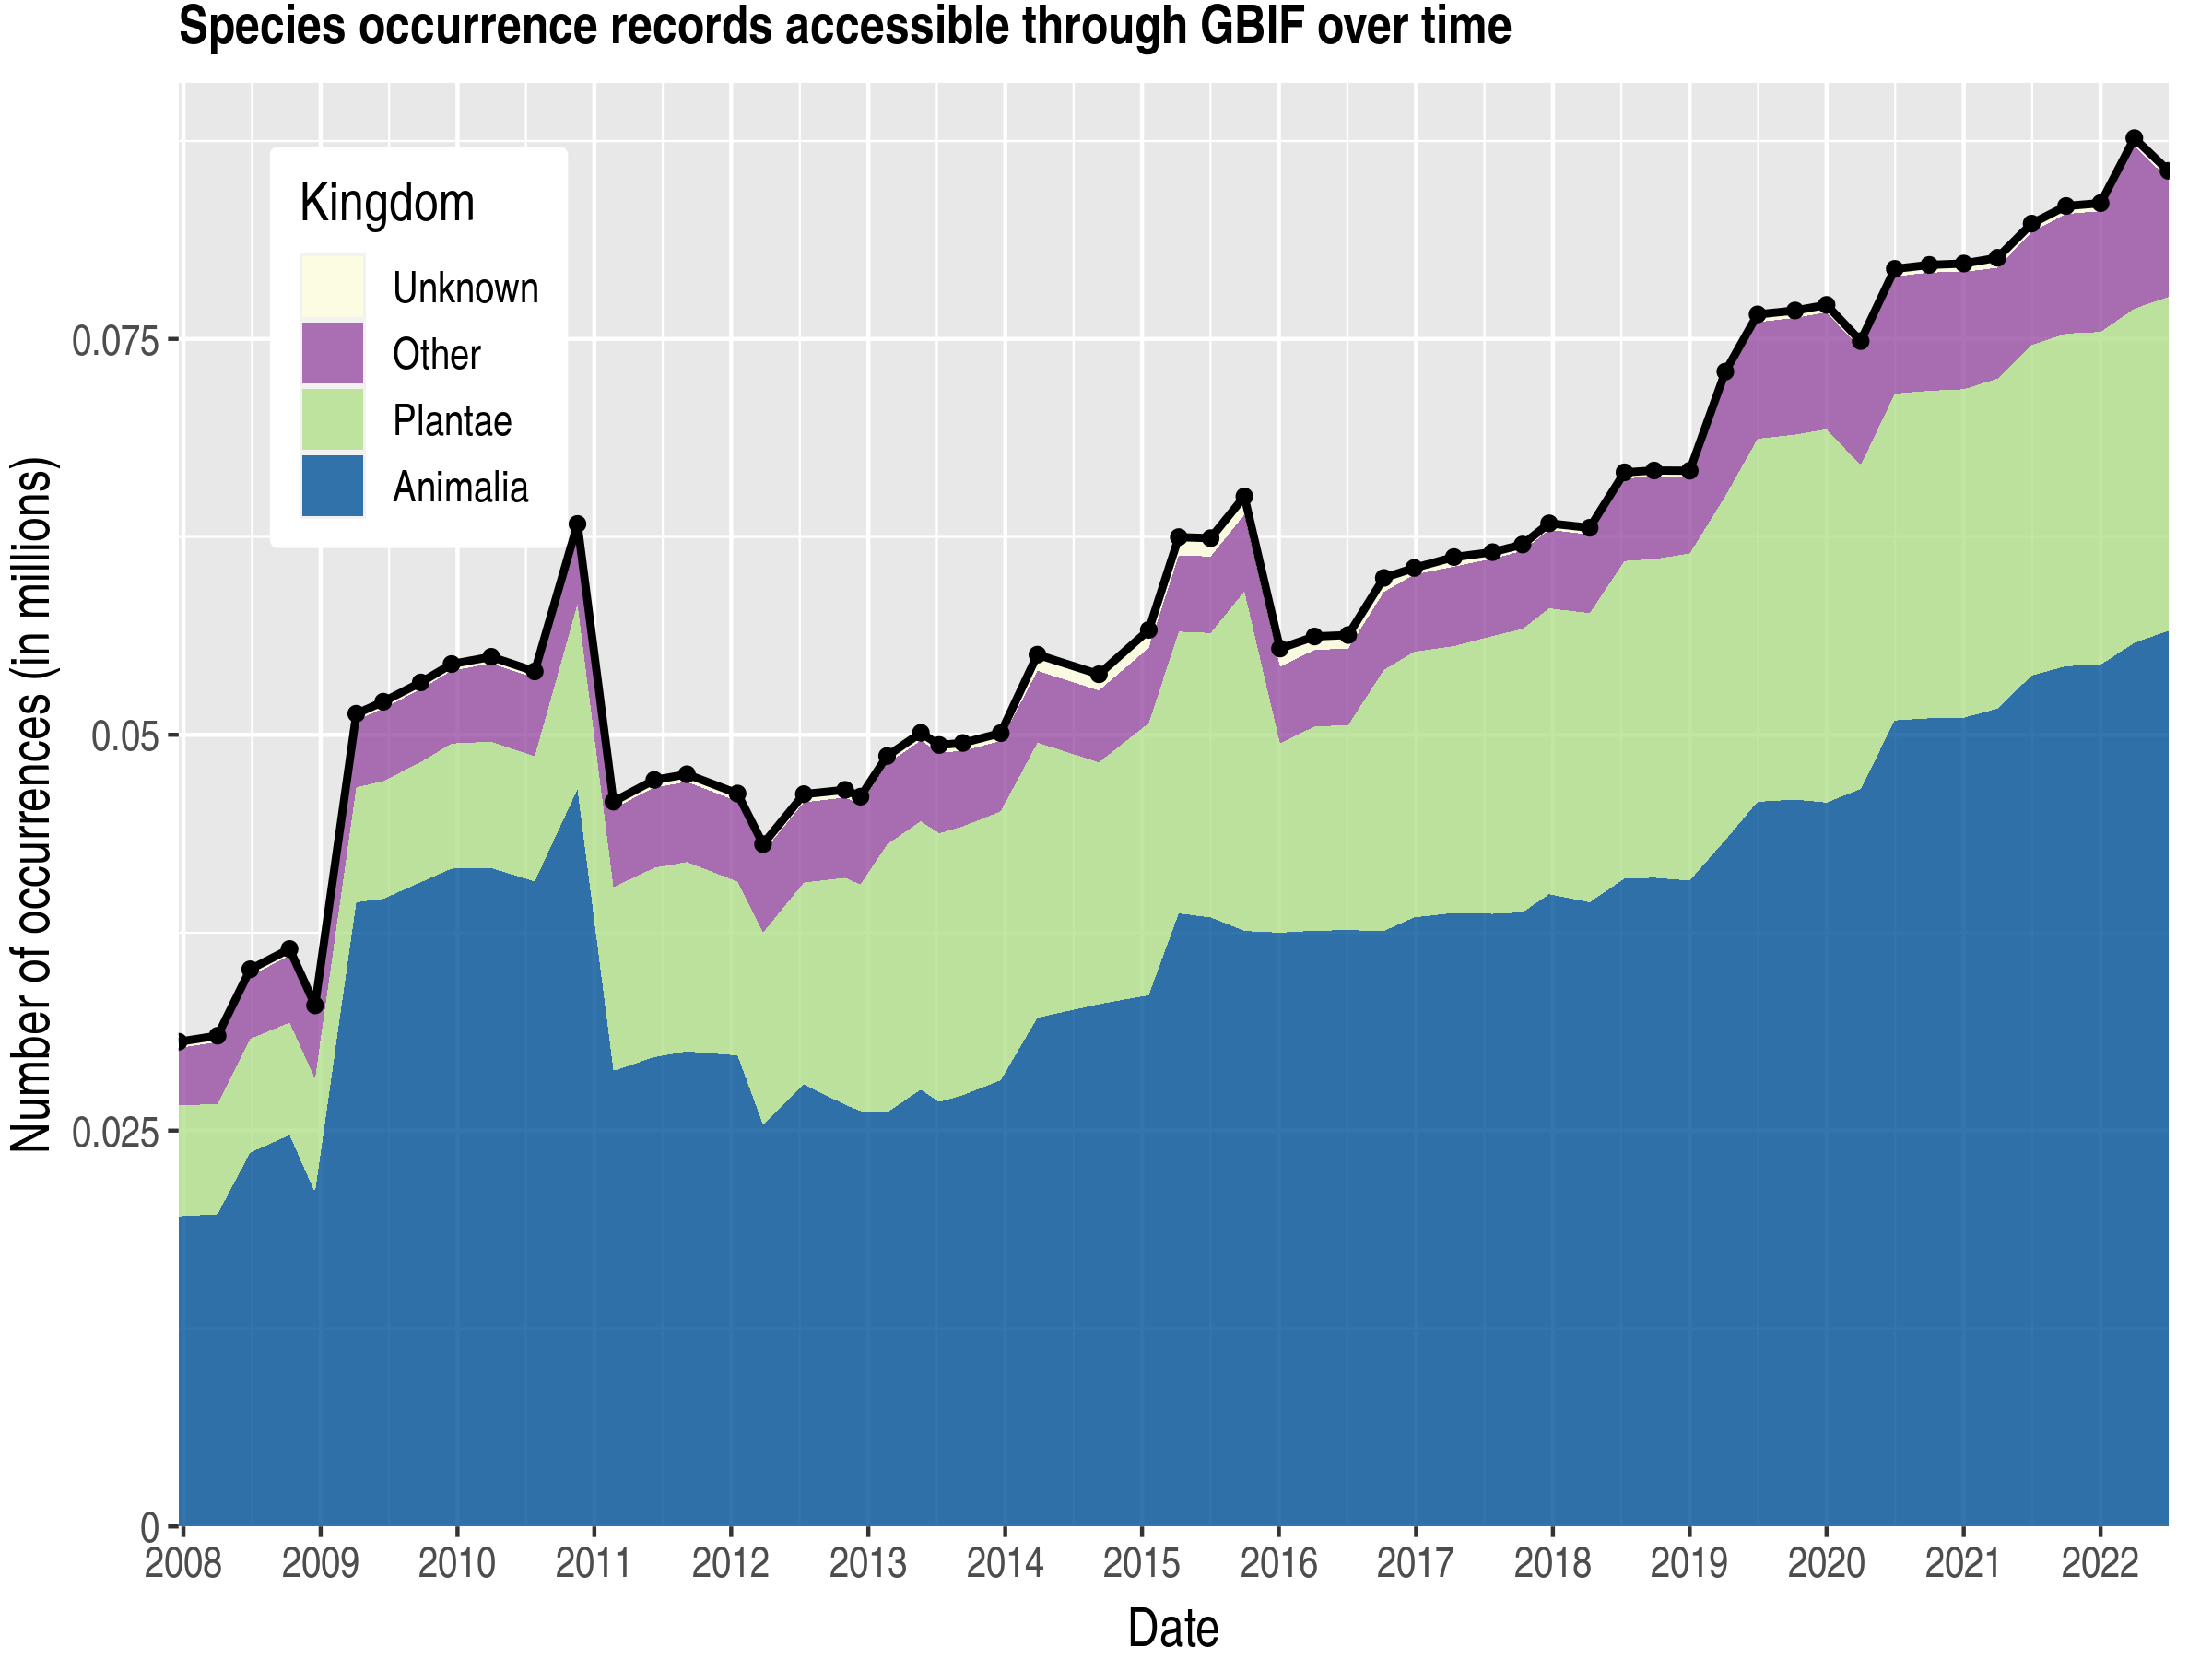 Data trend of records by kingdom about Sierra Leone